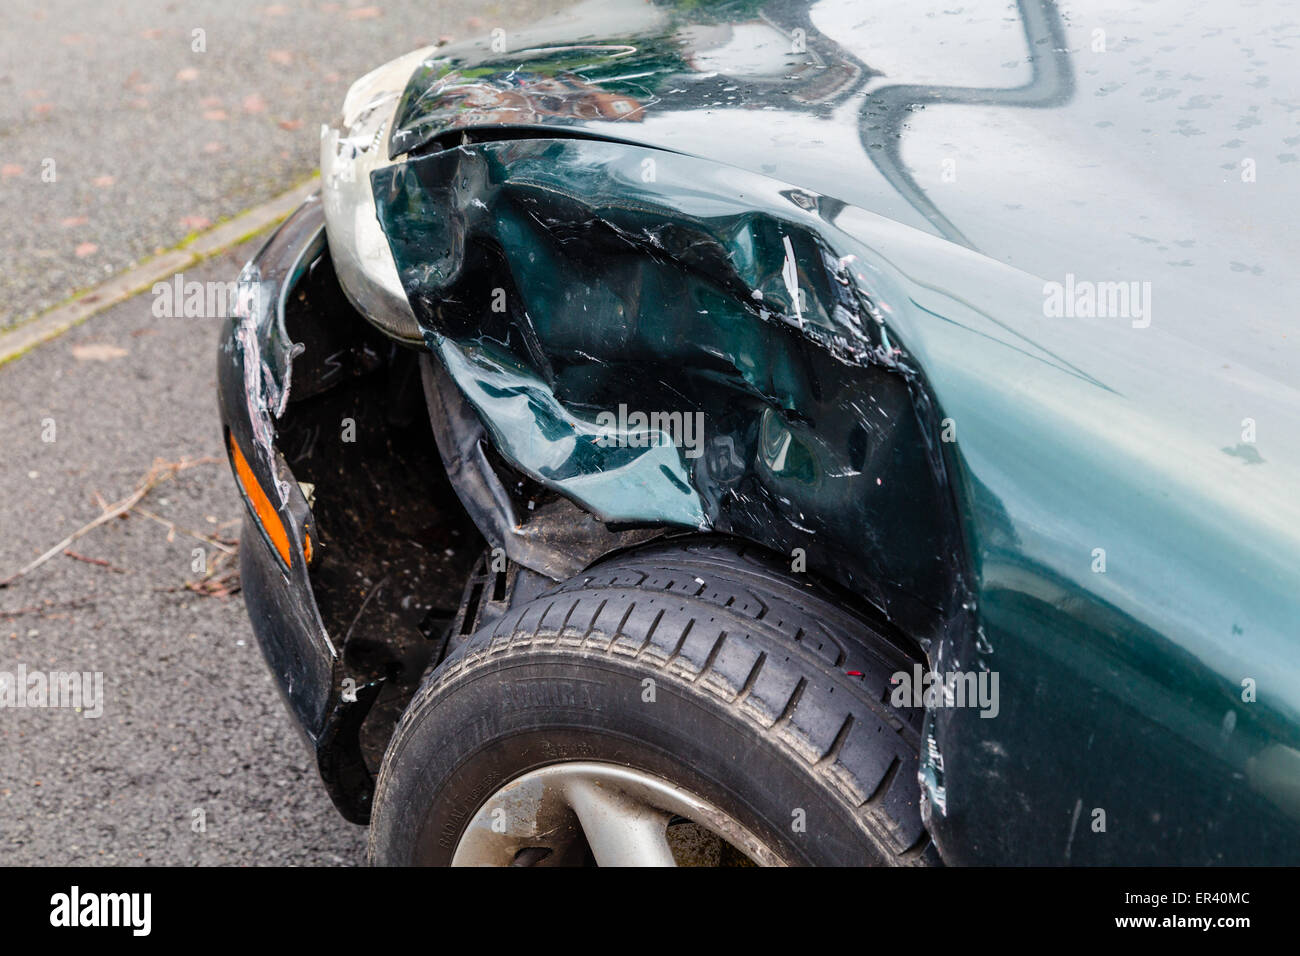 Car with damage to front wing on drive - Stock Image